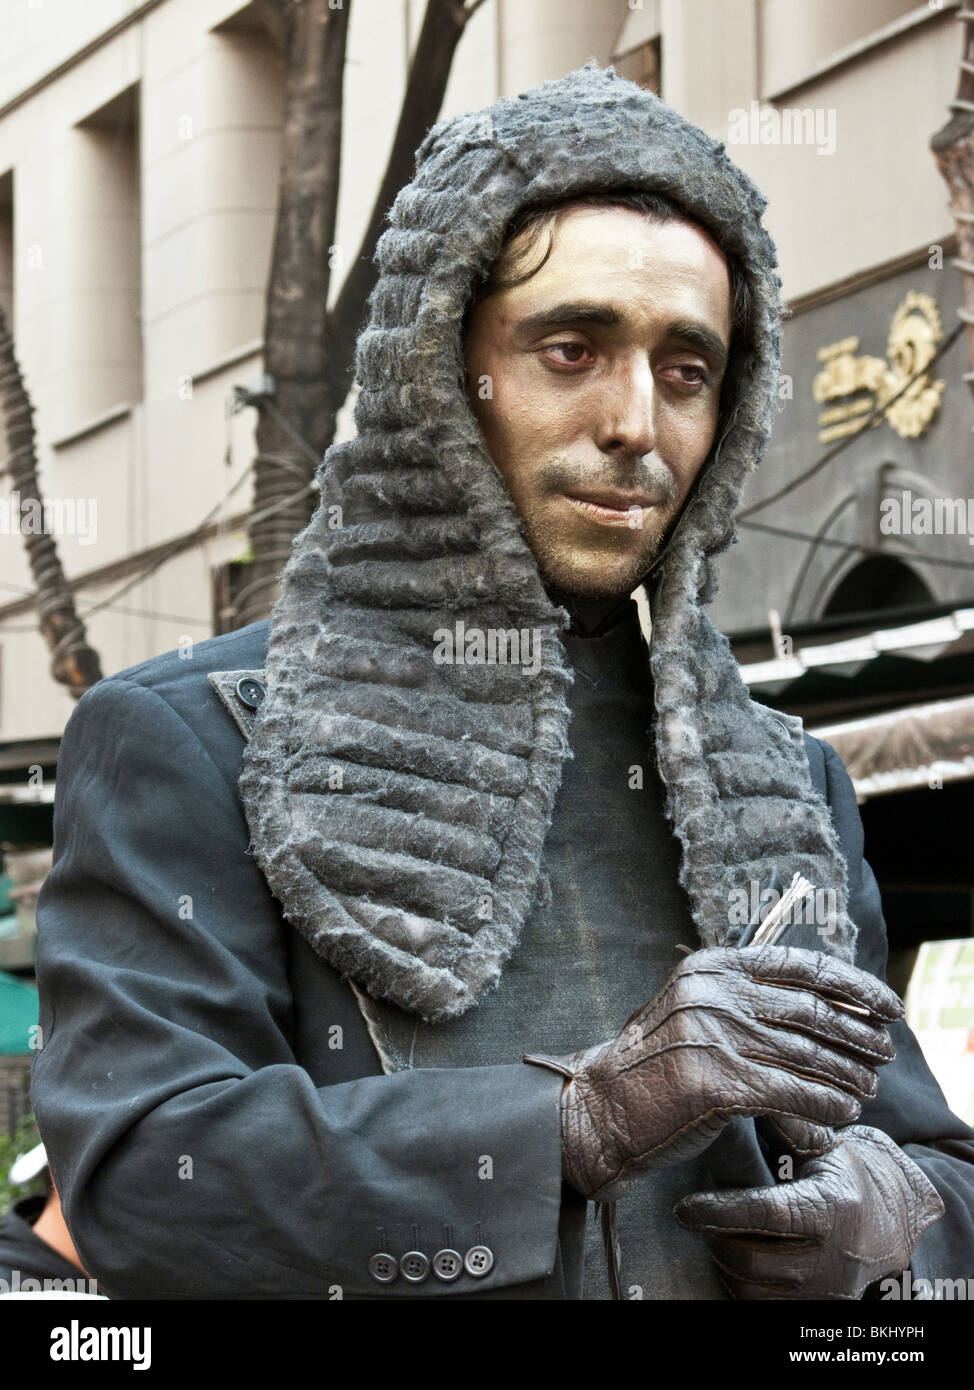 bewigged poet judge street mime hands out poetic justice in historic center of Mexico City - Stock Image